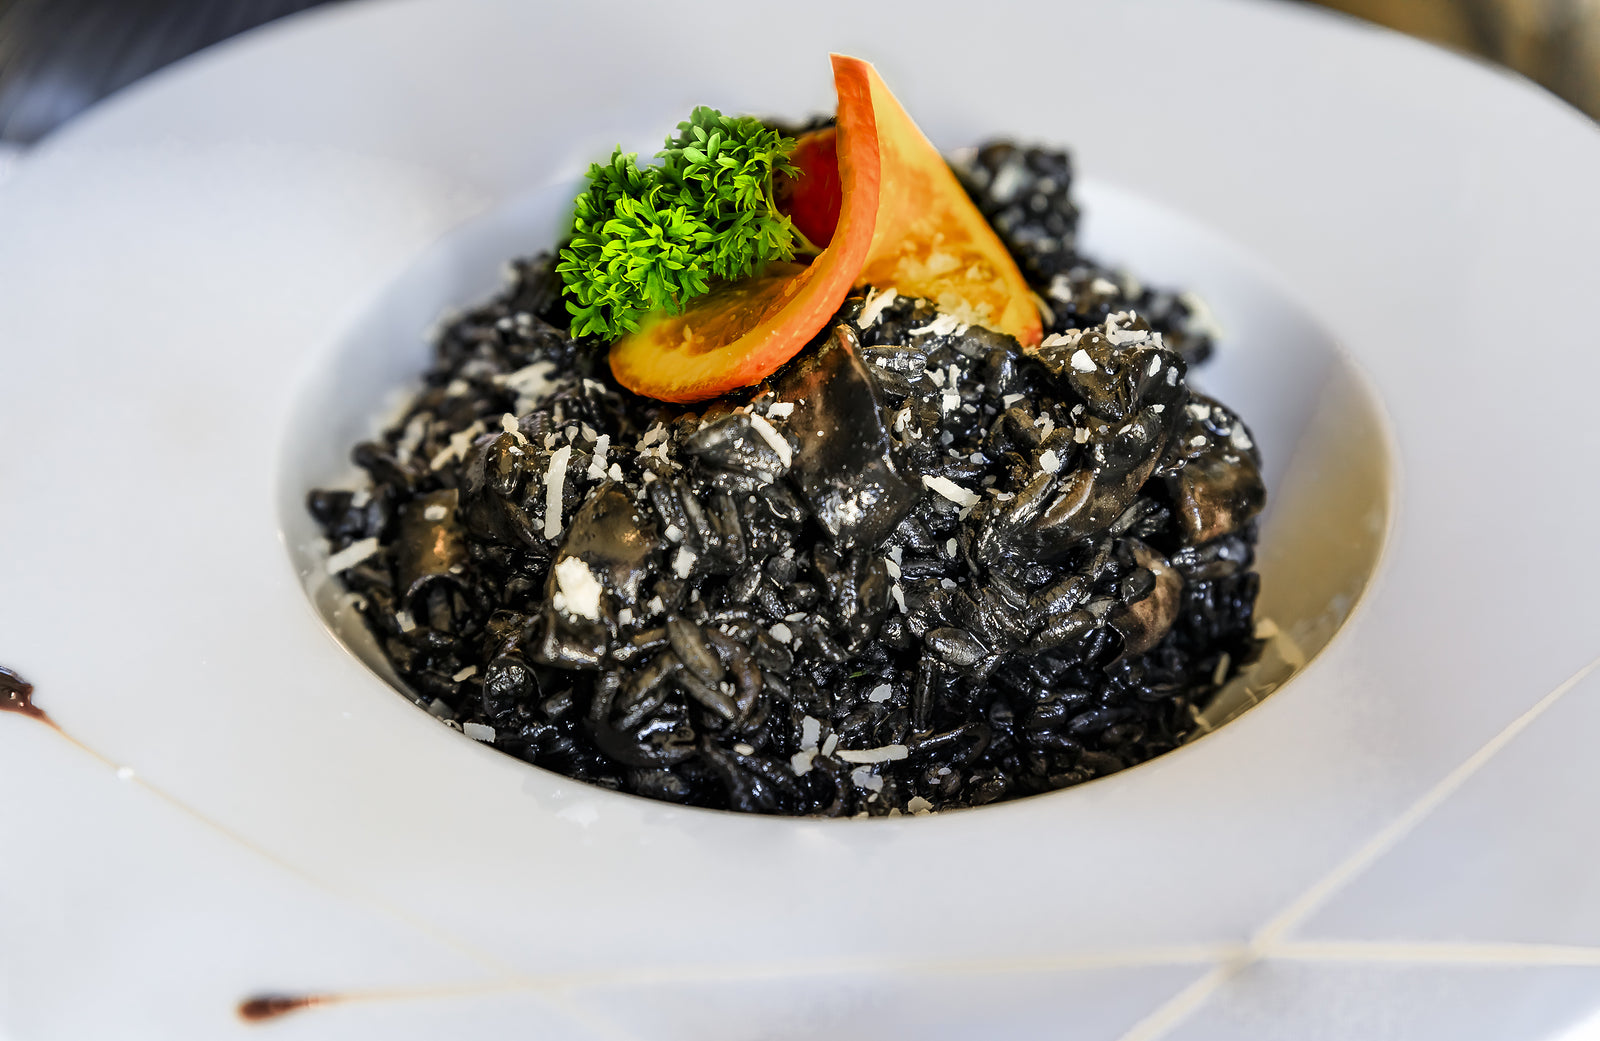 Top Trend: It's All About Black Food!